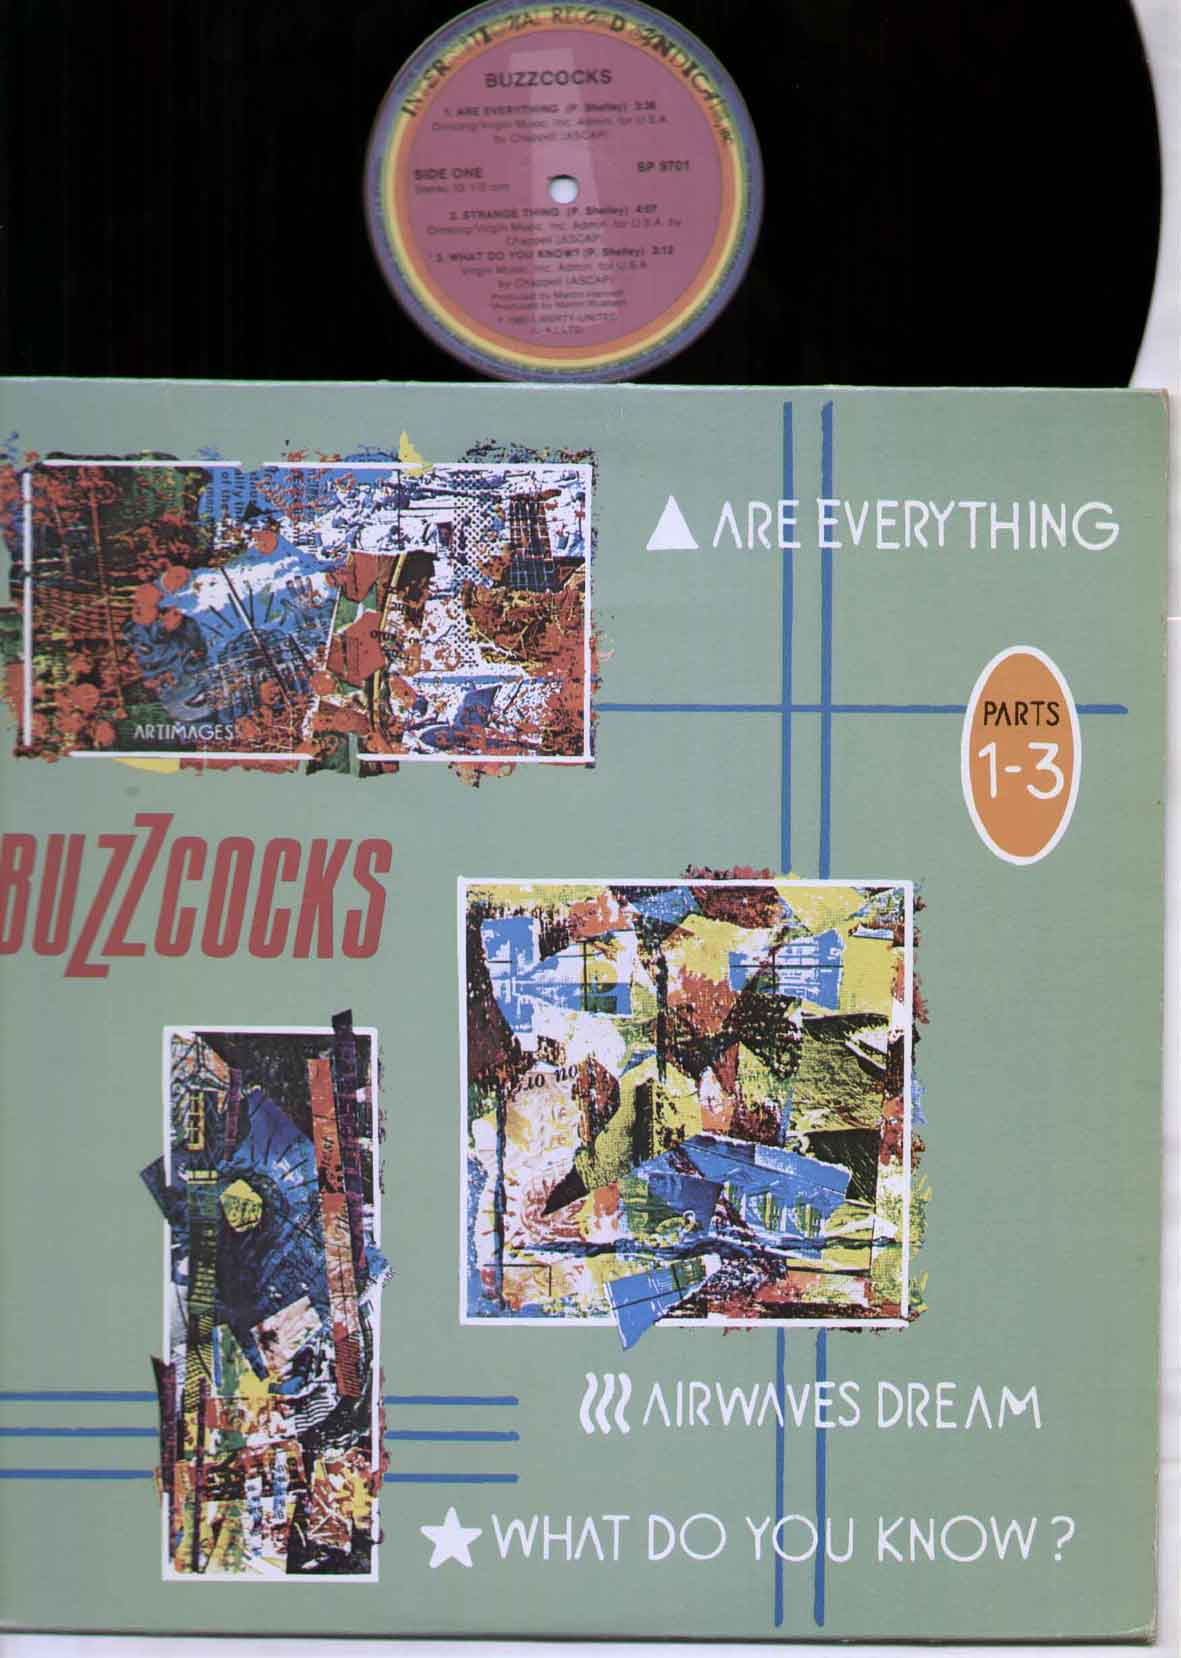 Buzzcocks - Are Everything Album